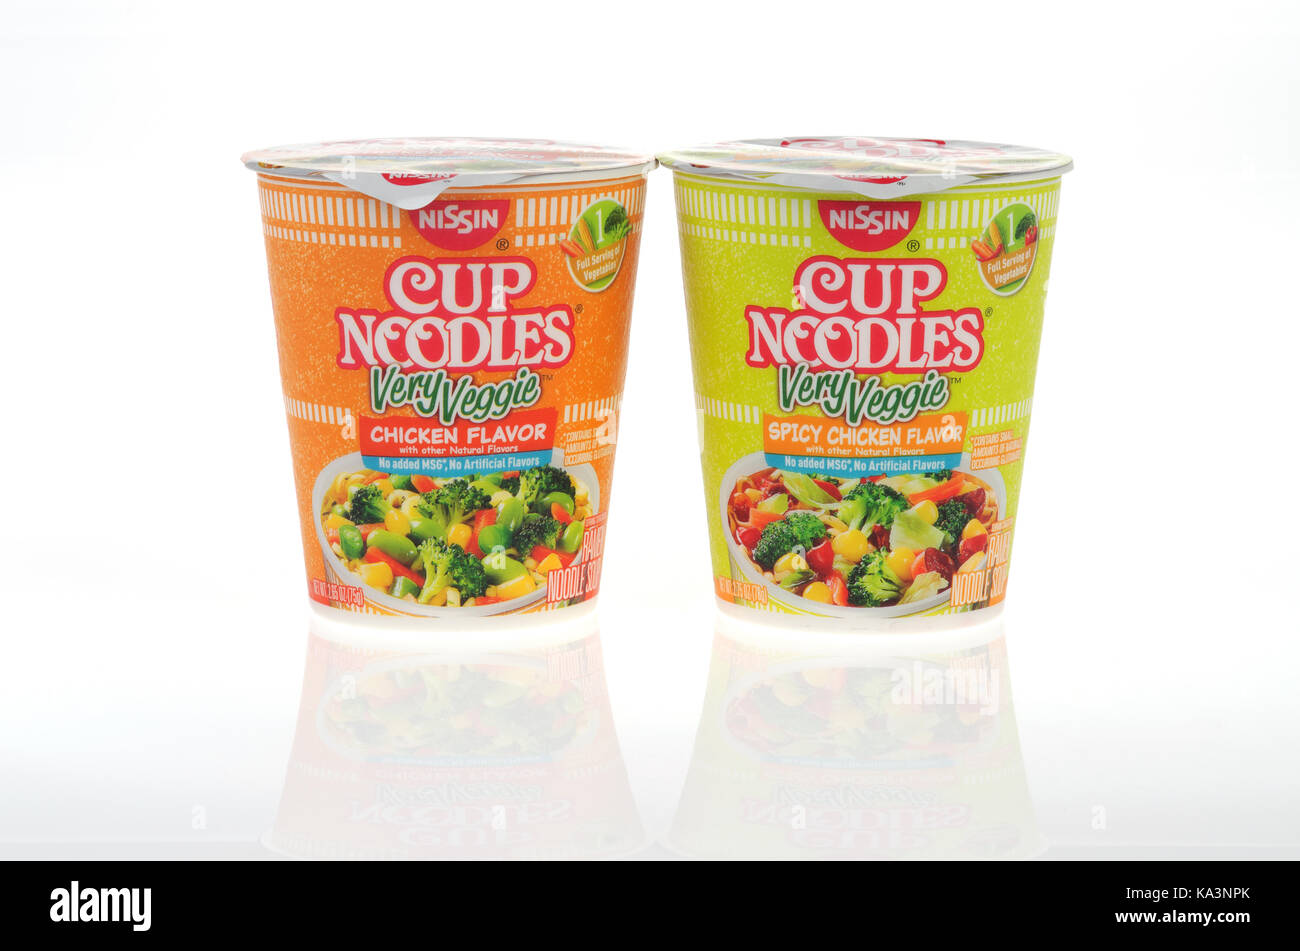 Unopened Nissin Cup of Noodles Very Veggie chicken flavor and spicy chicken flavor soups on whites background, cutout, - Stock Image